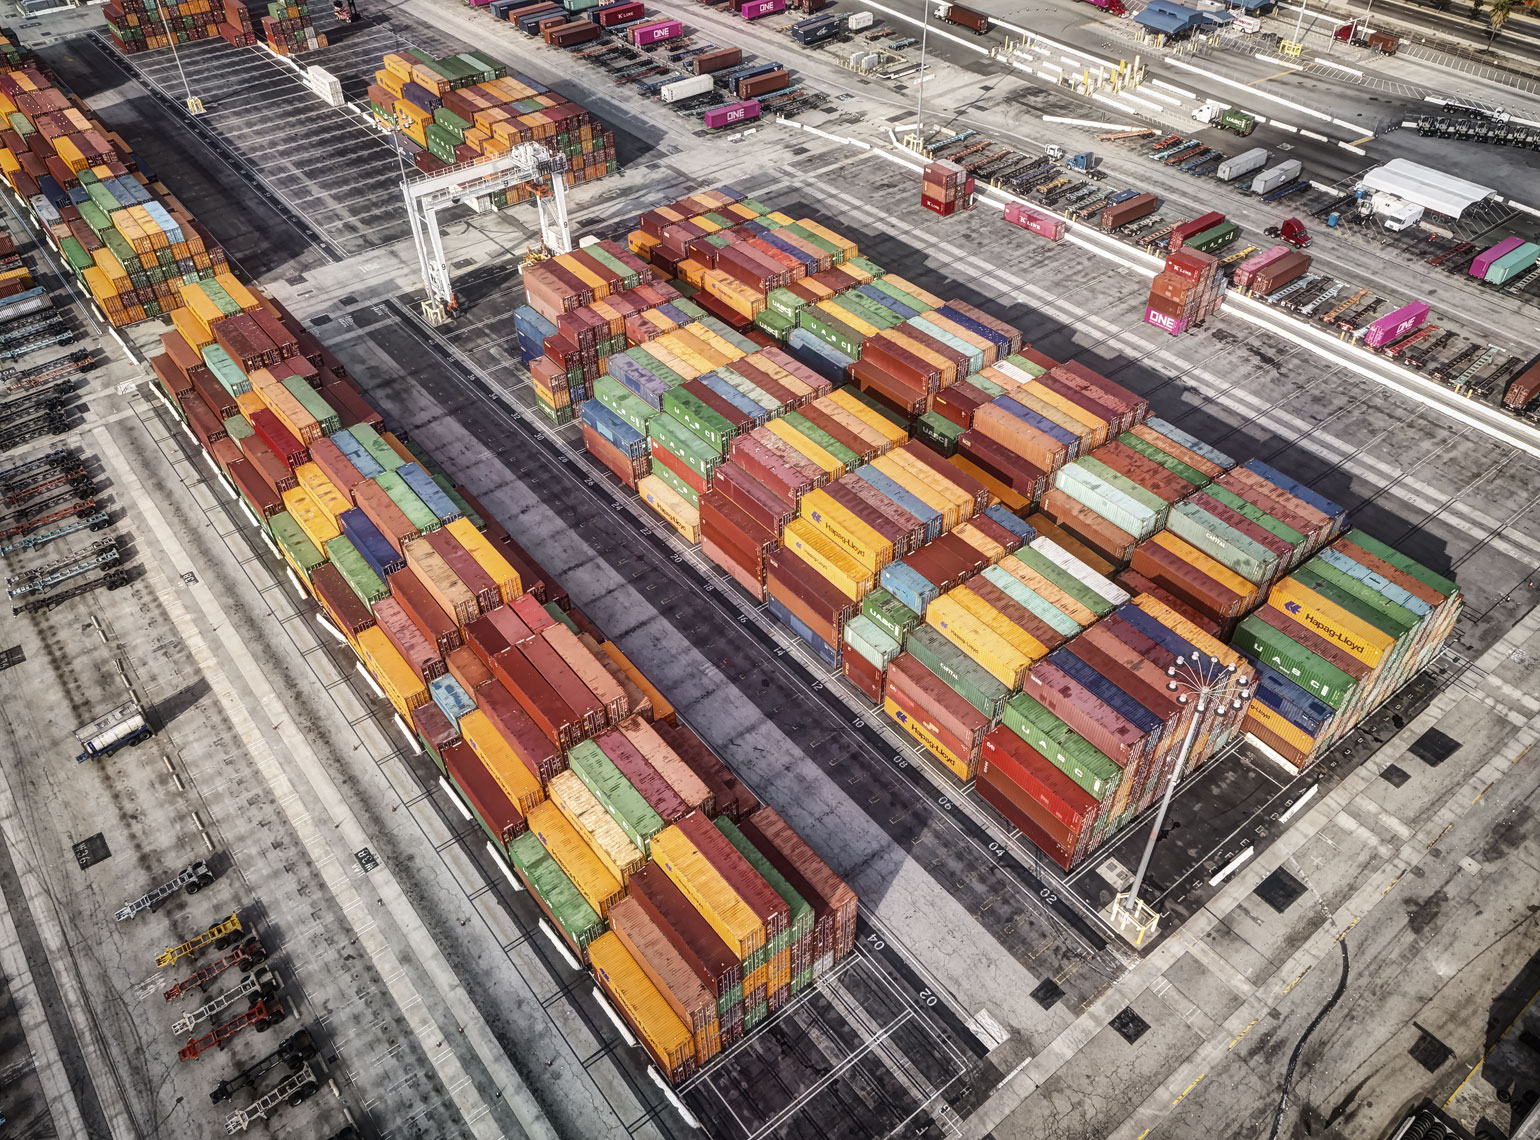 Containers in staging area/shipping/industrial drone photography